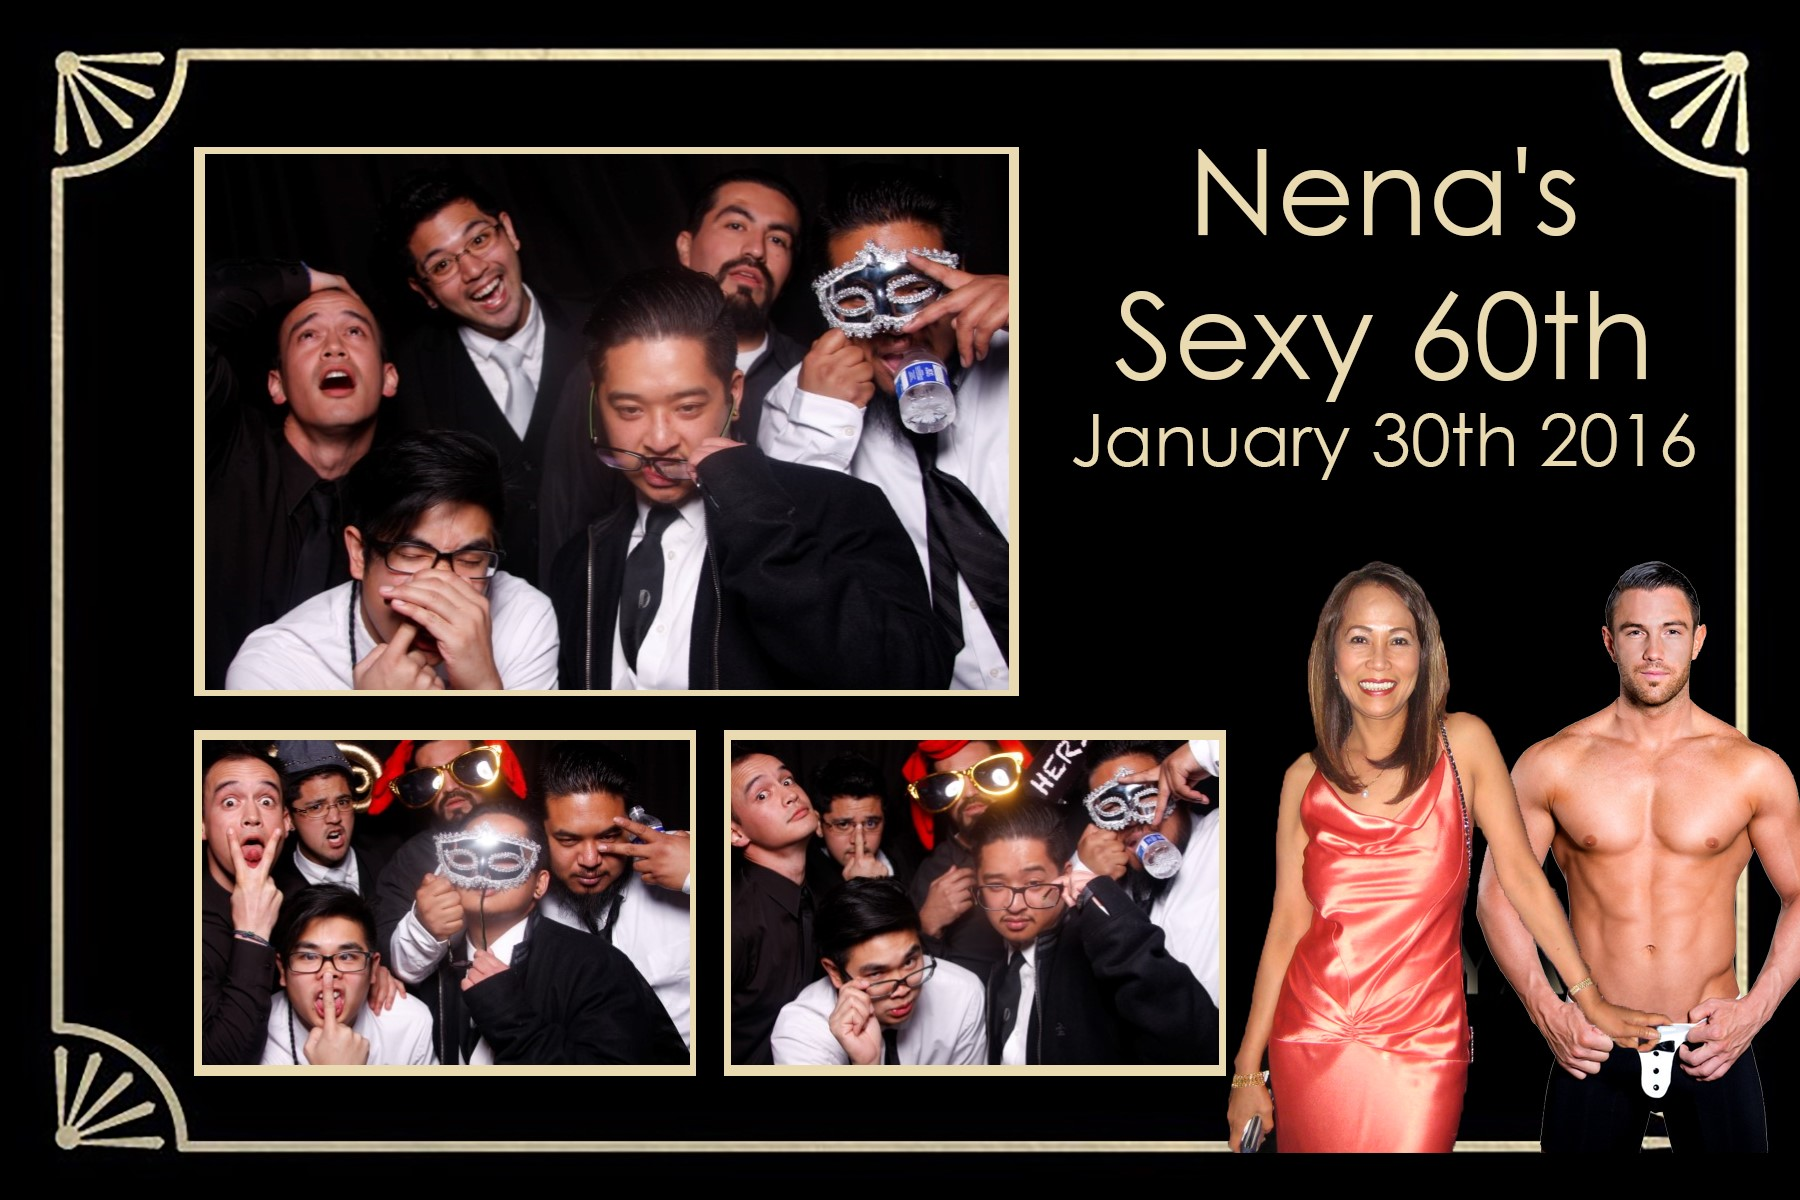 Nena's 60th Birthday